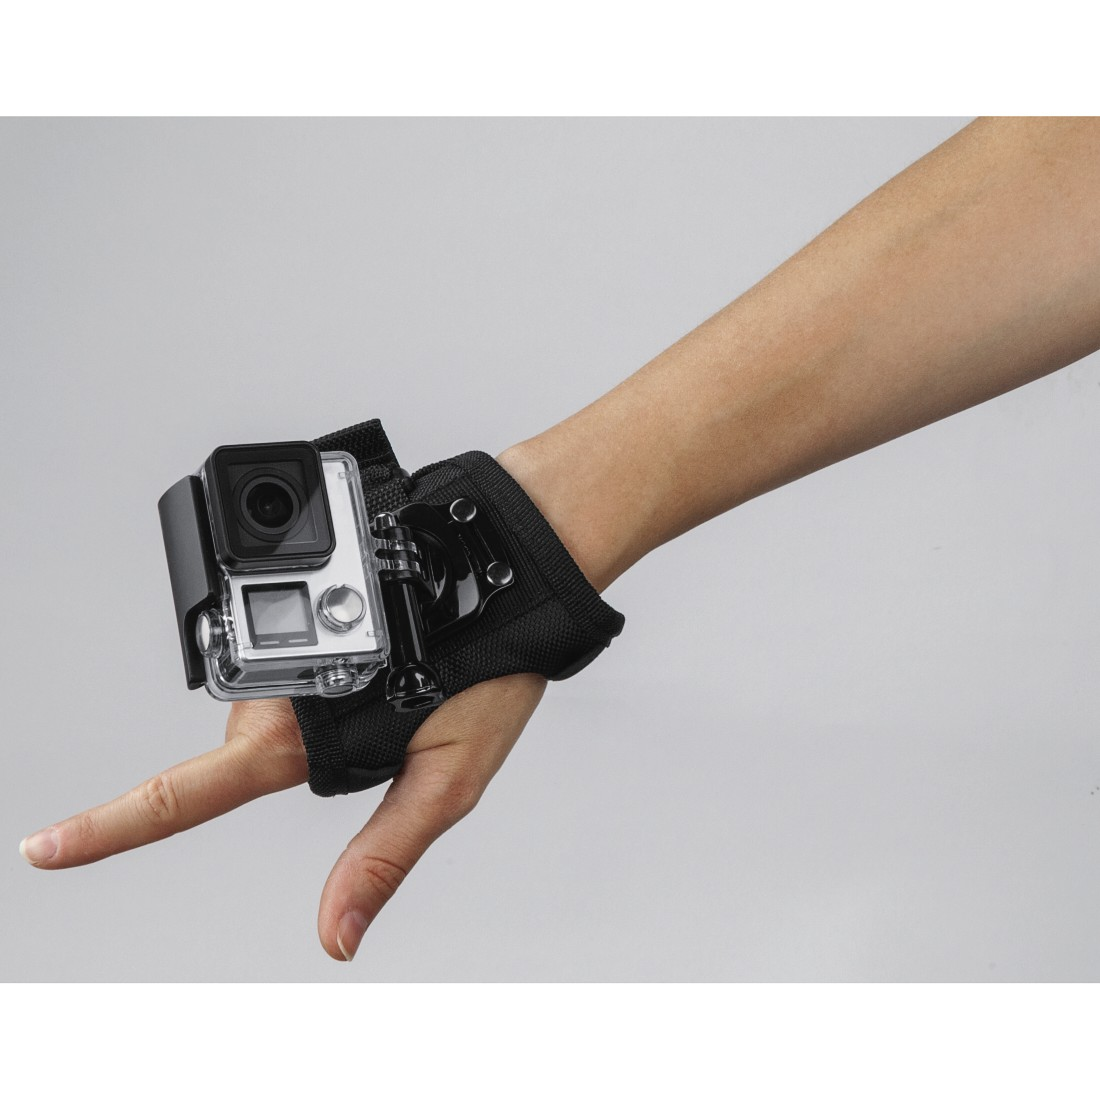 awx High-Res Appliance - Hama, Wrist Strap 105 for GoPro, L, 360°